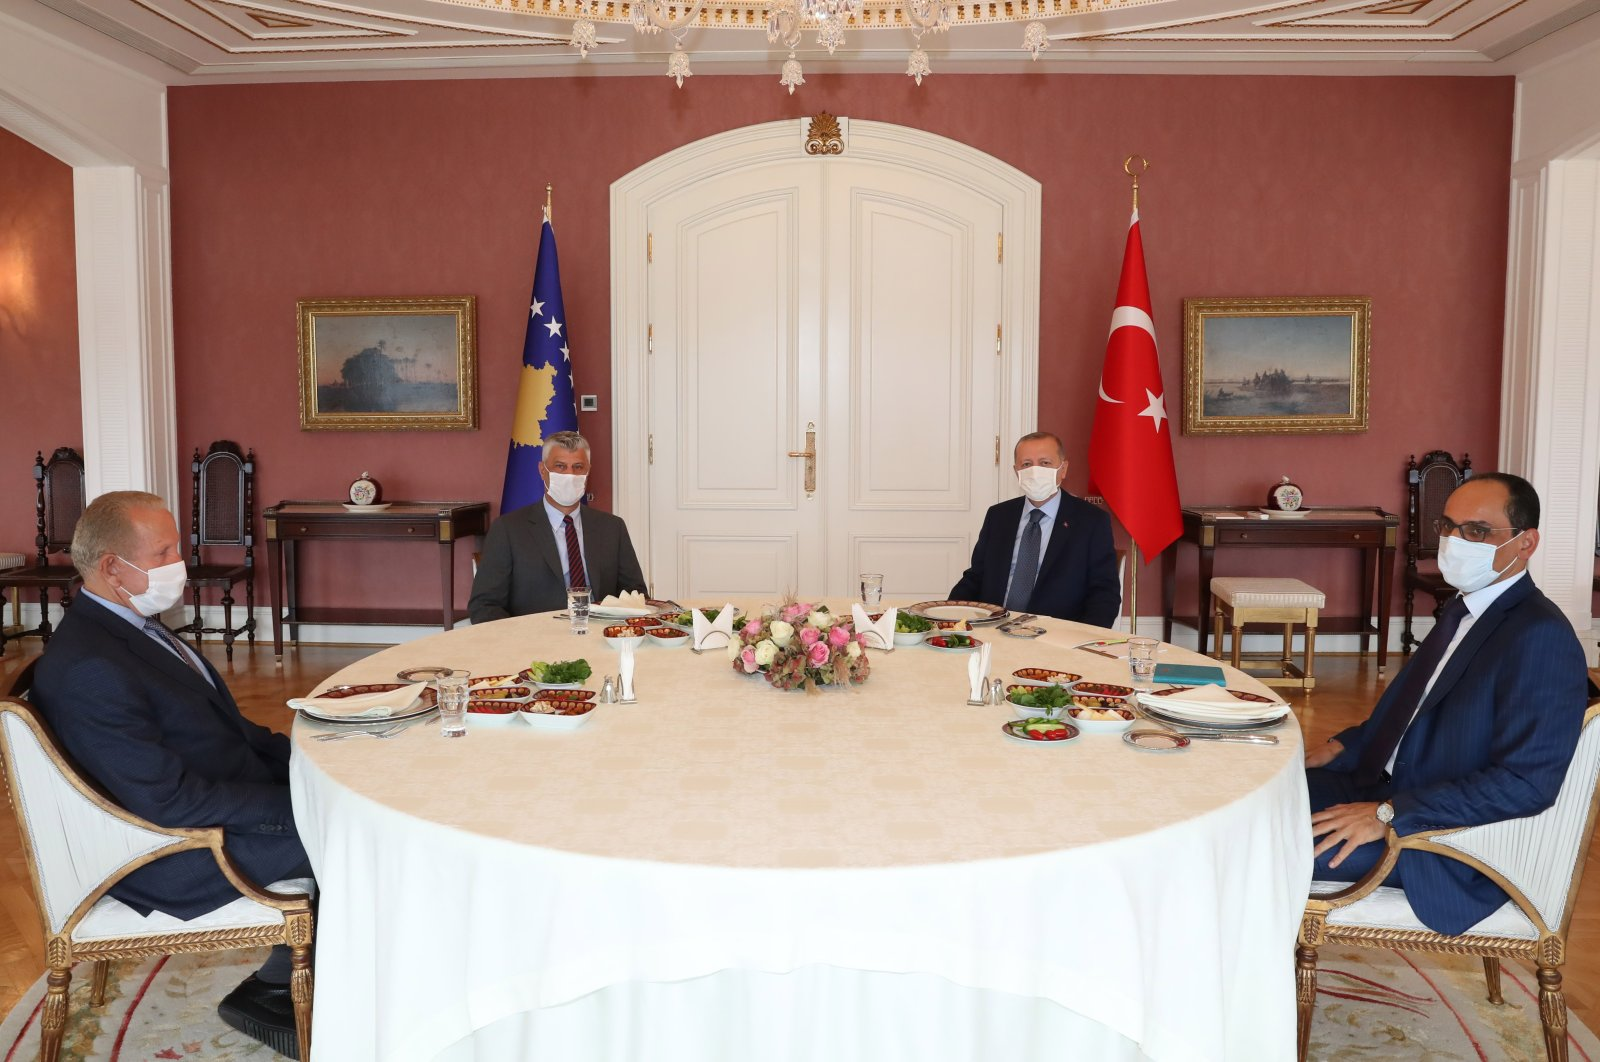 President Recep Tayyip Erdoğan came together with Kosovar President Hashim Thaci in Istanbul's Vahdettin Mansion, Sept. 20, 2020. (AA Photo)